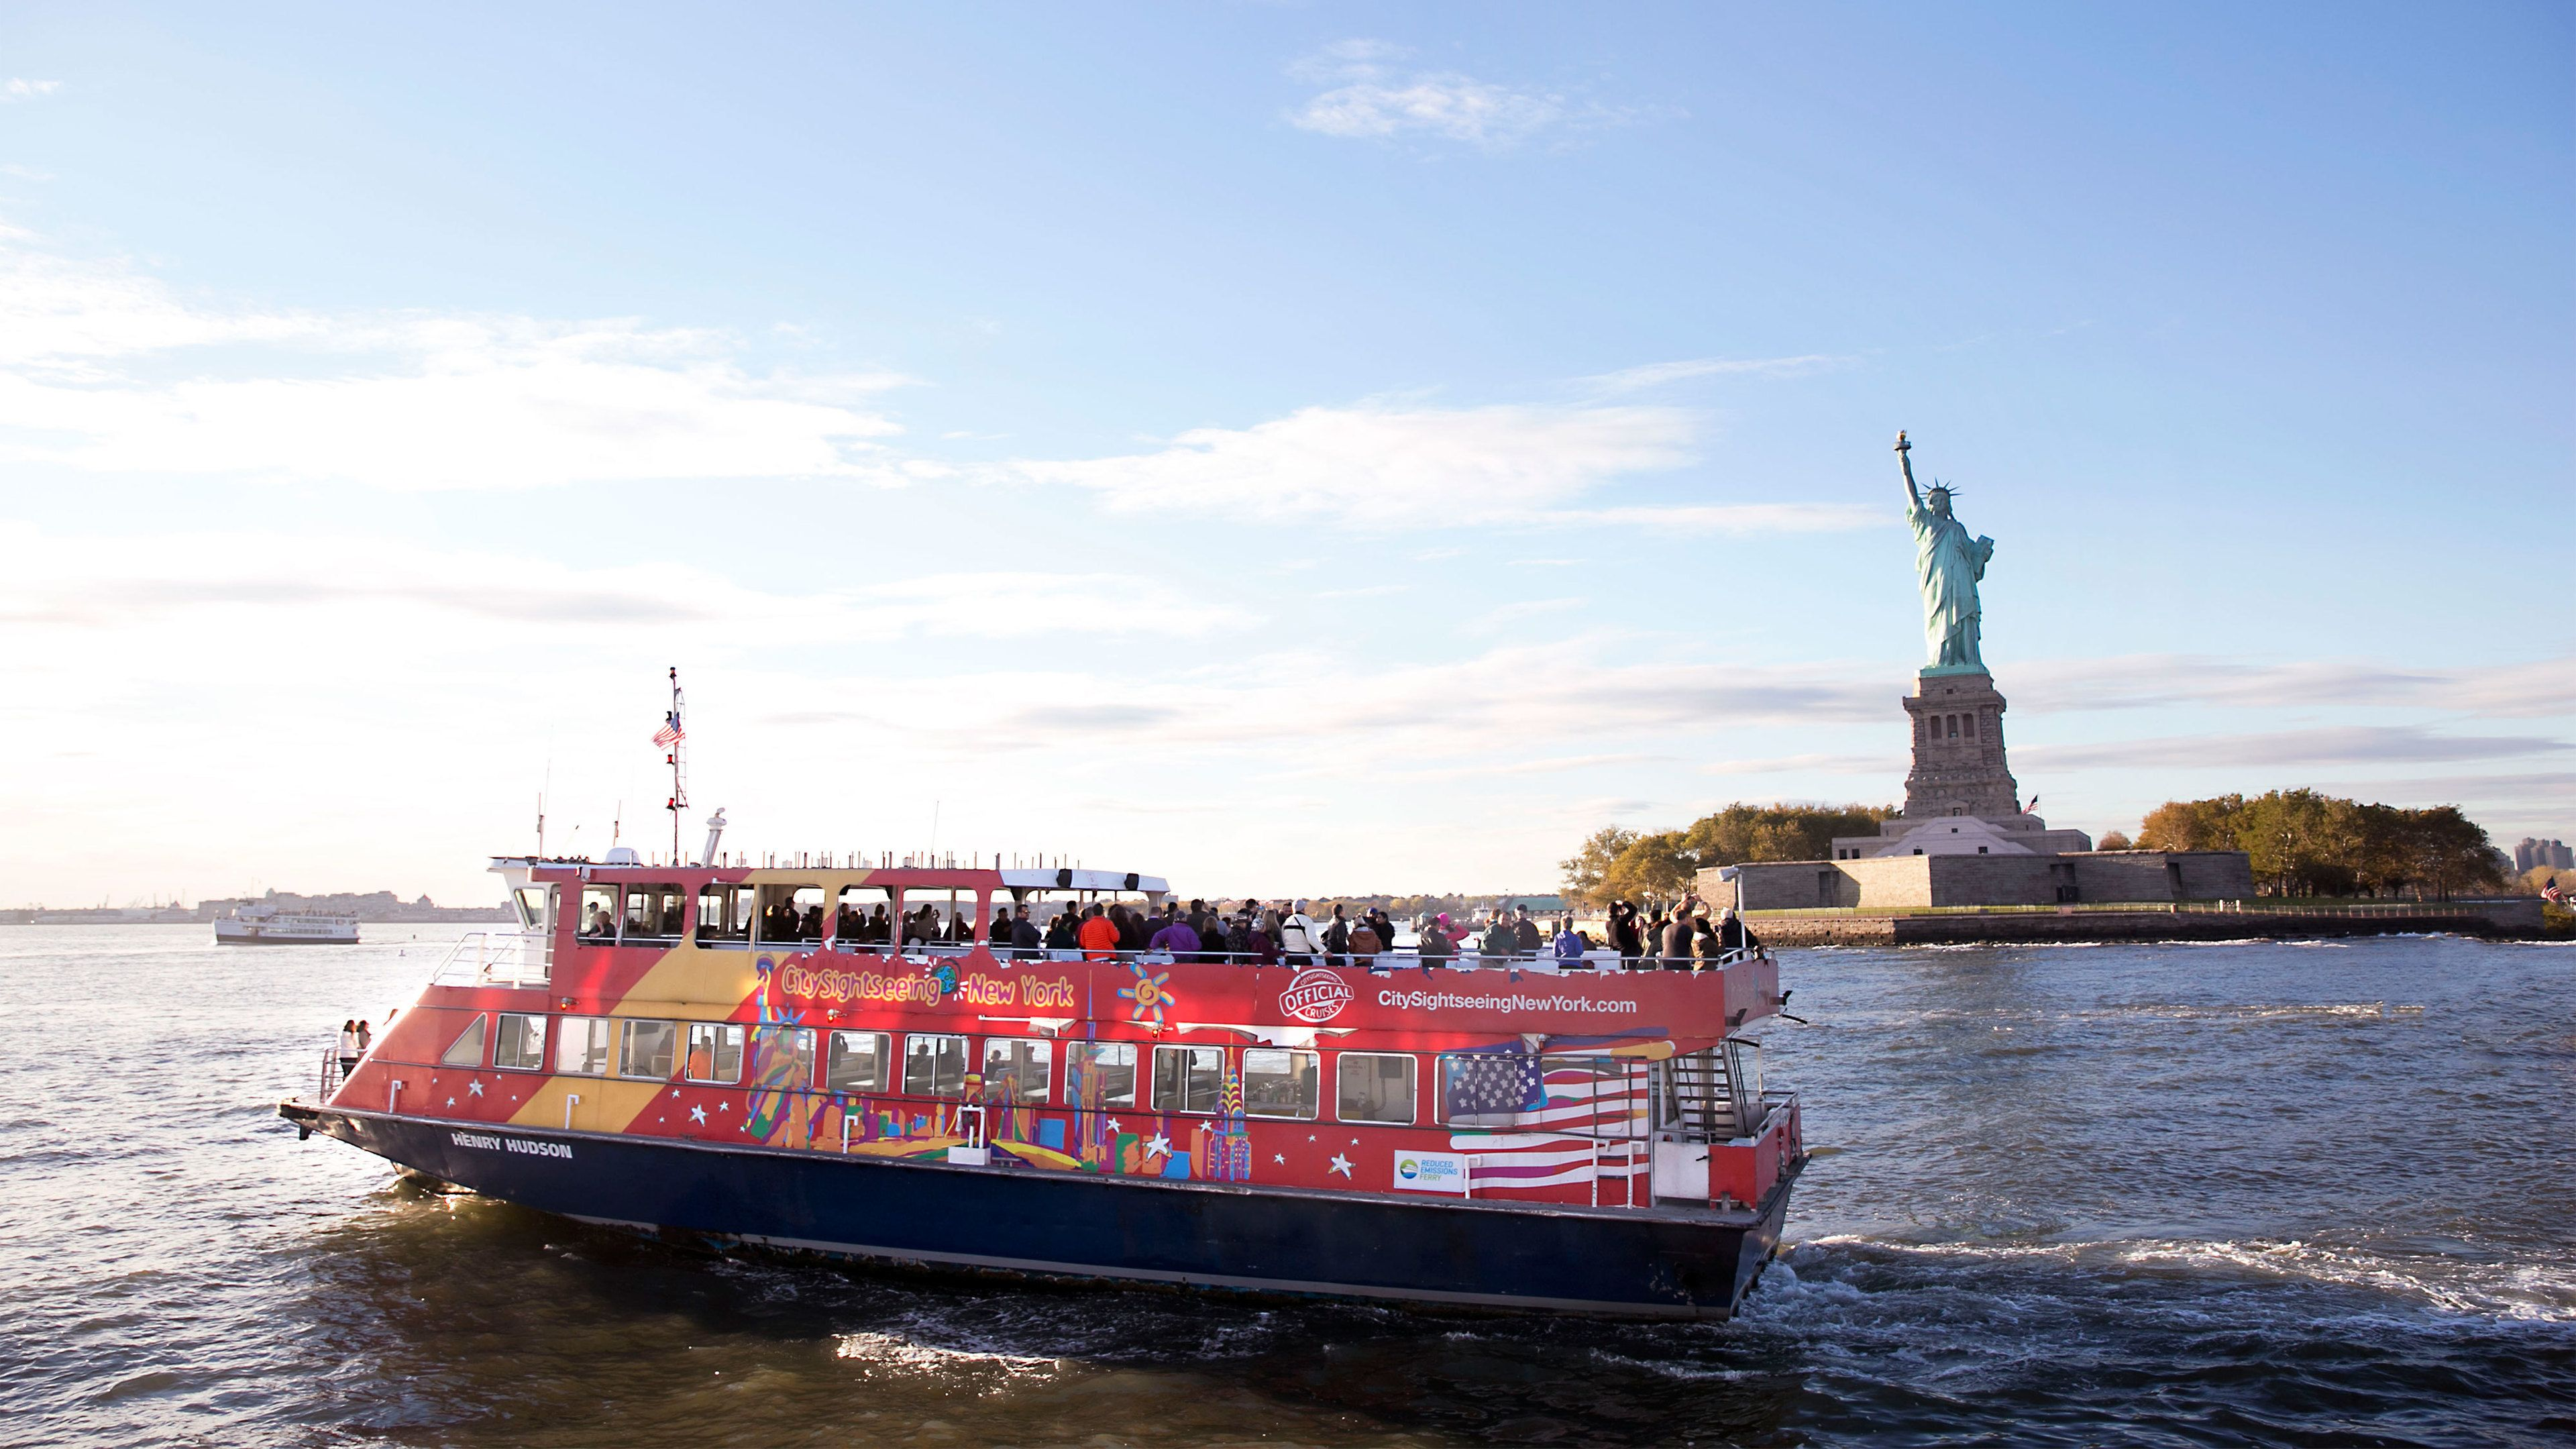 Sightseeing boat near the Statue of Liberty in New York